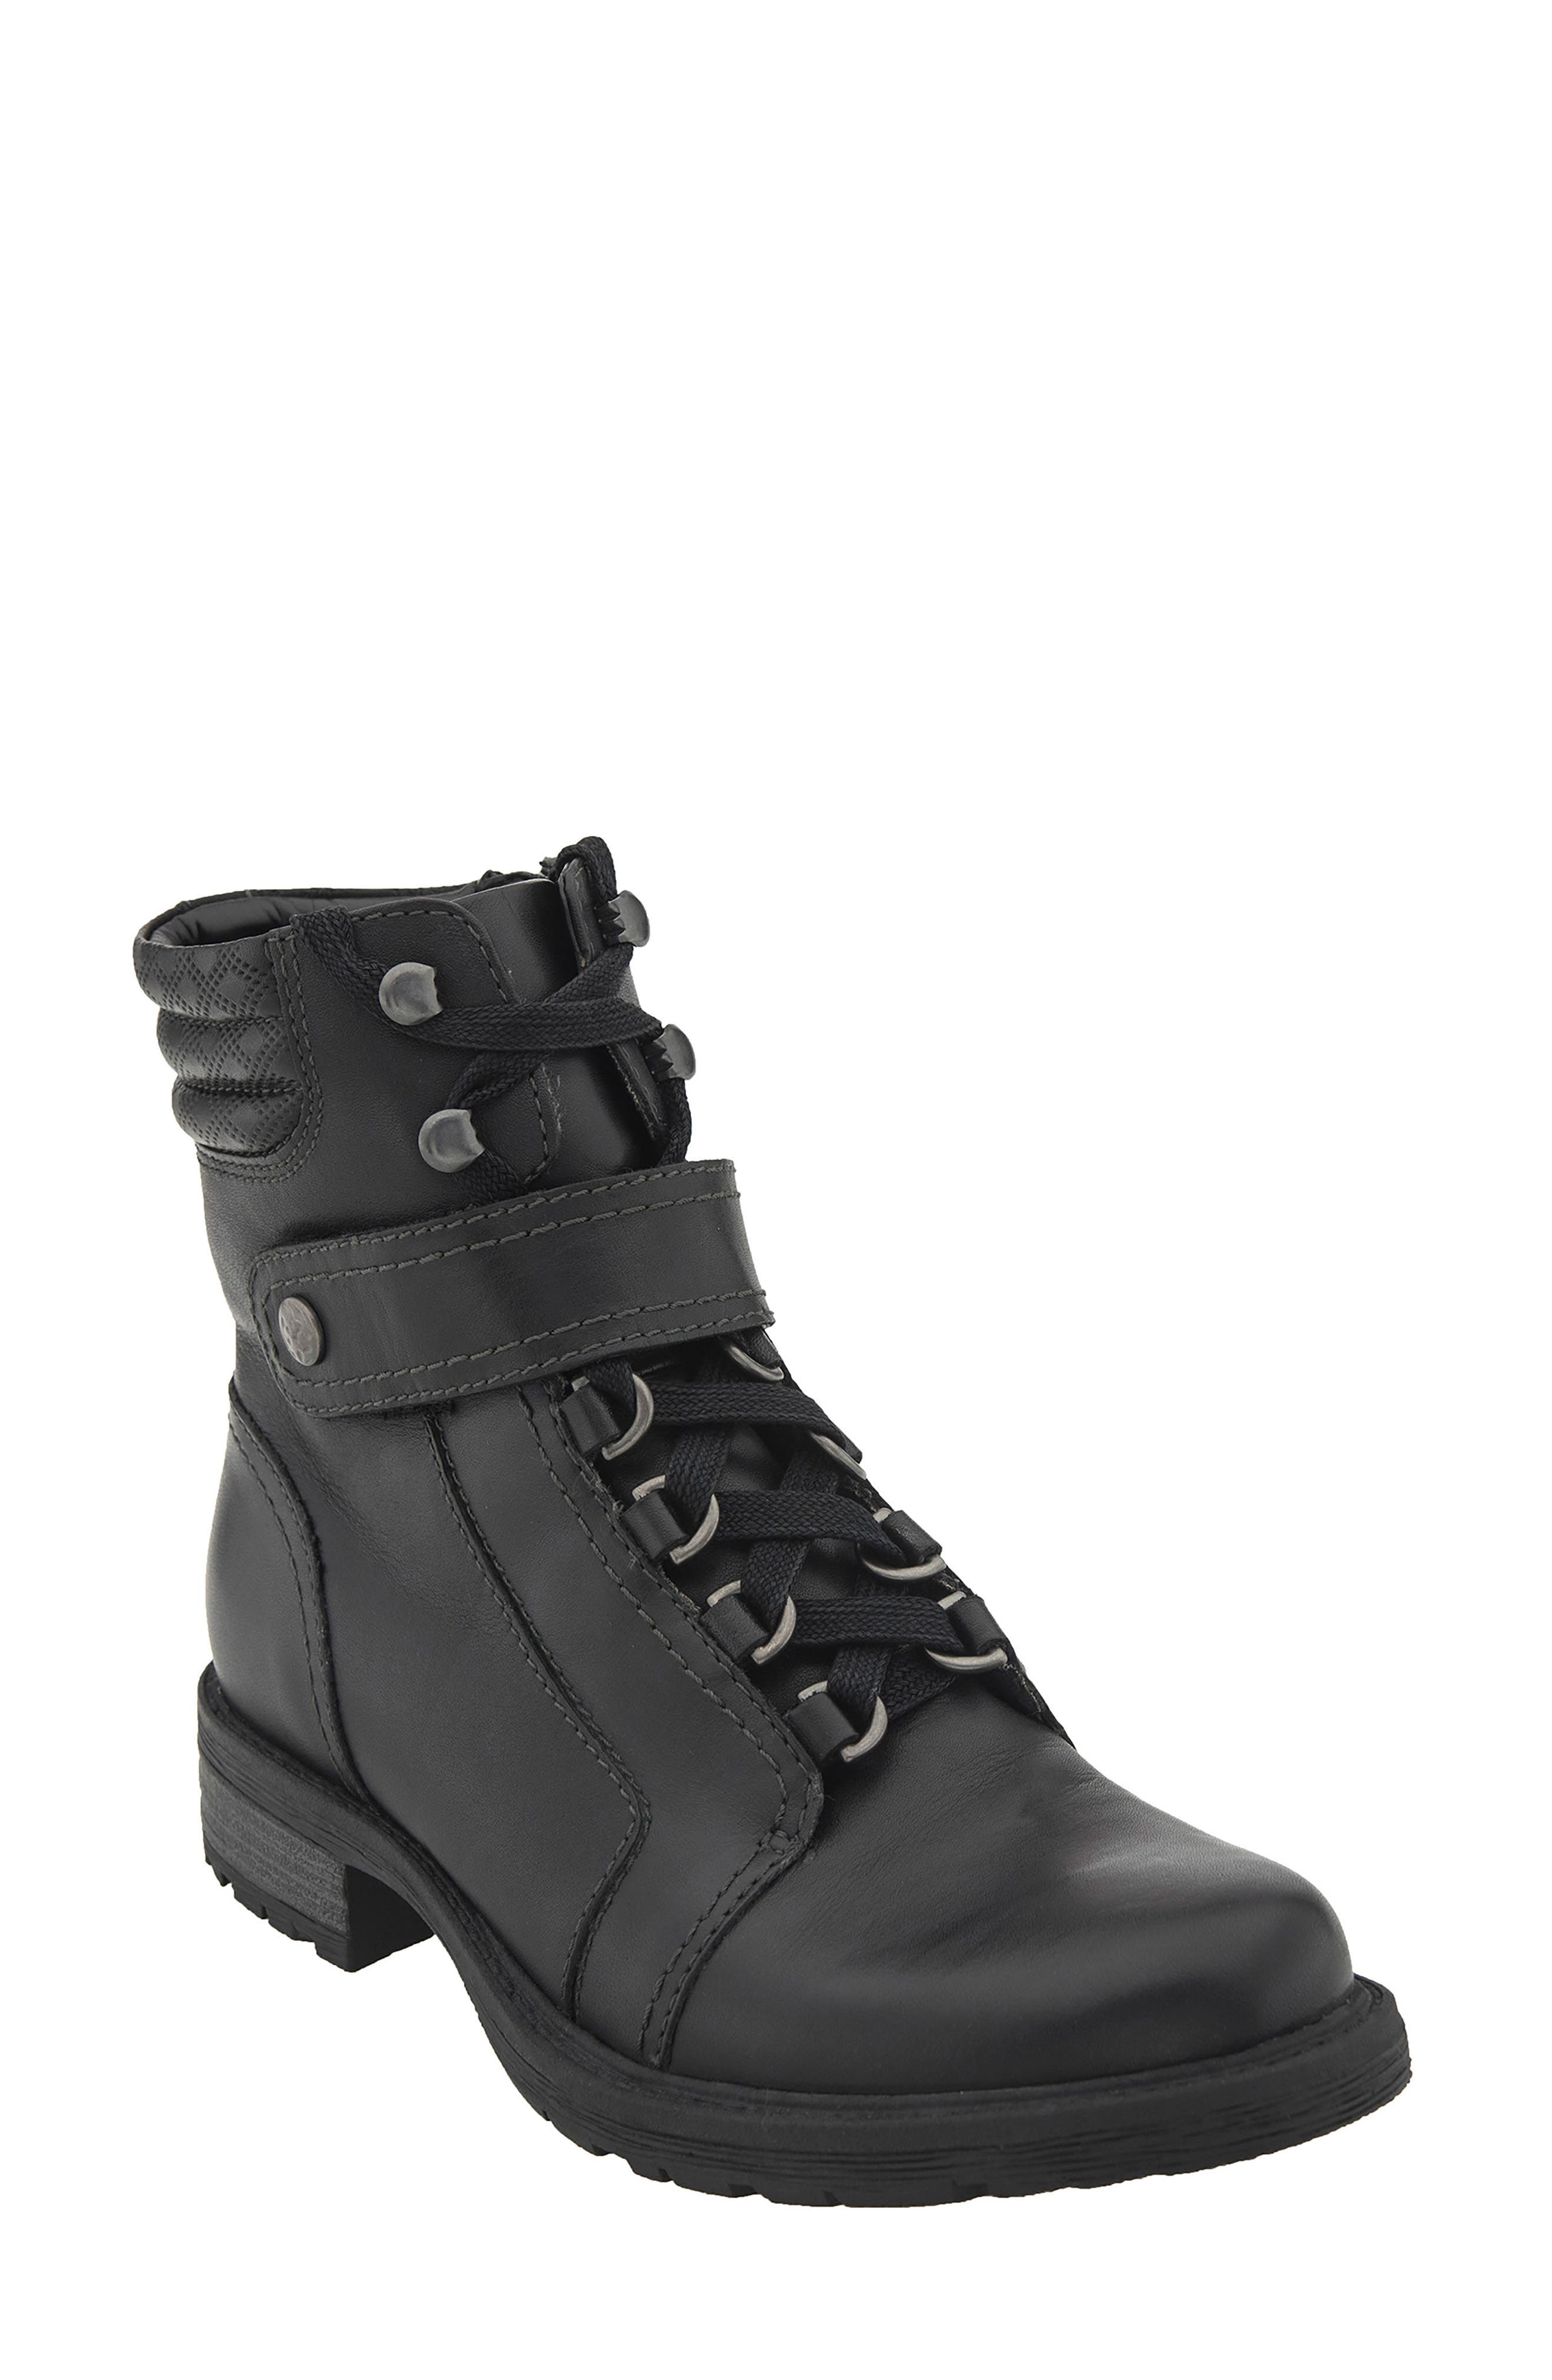 Everest Lace-Up Boot,                         Main,                         color, Black Leather